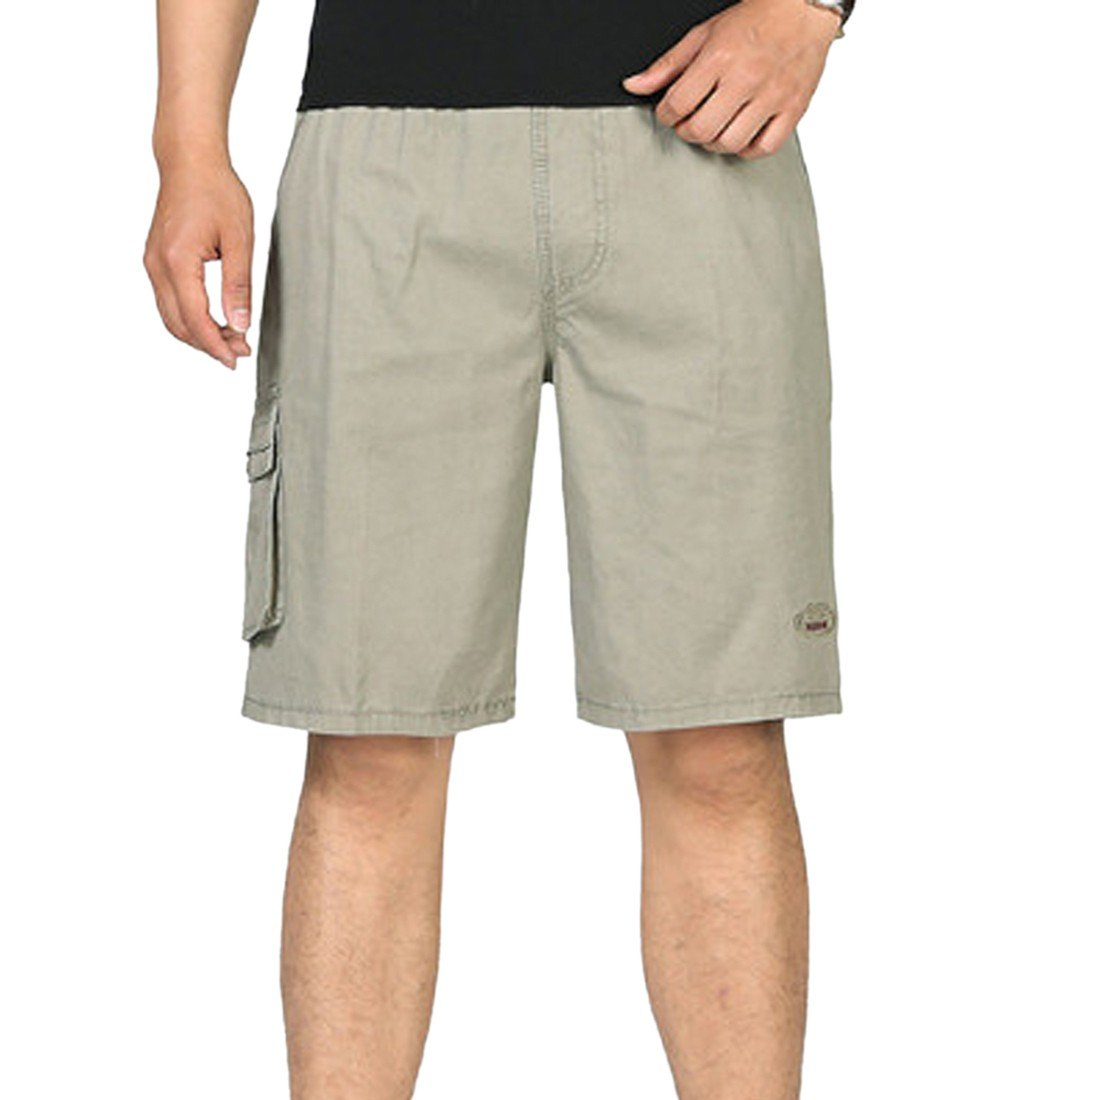 Paixpays Mens Casual Slim Fit Cotton Solid Multi-Pocket Cargo Shorts E3096S0328